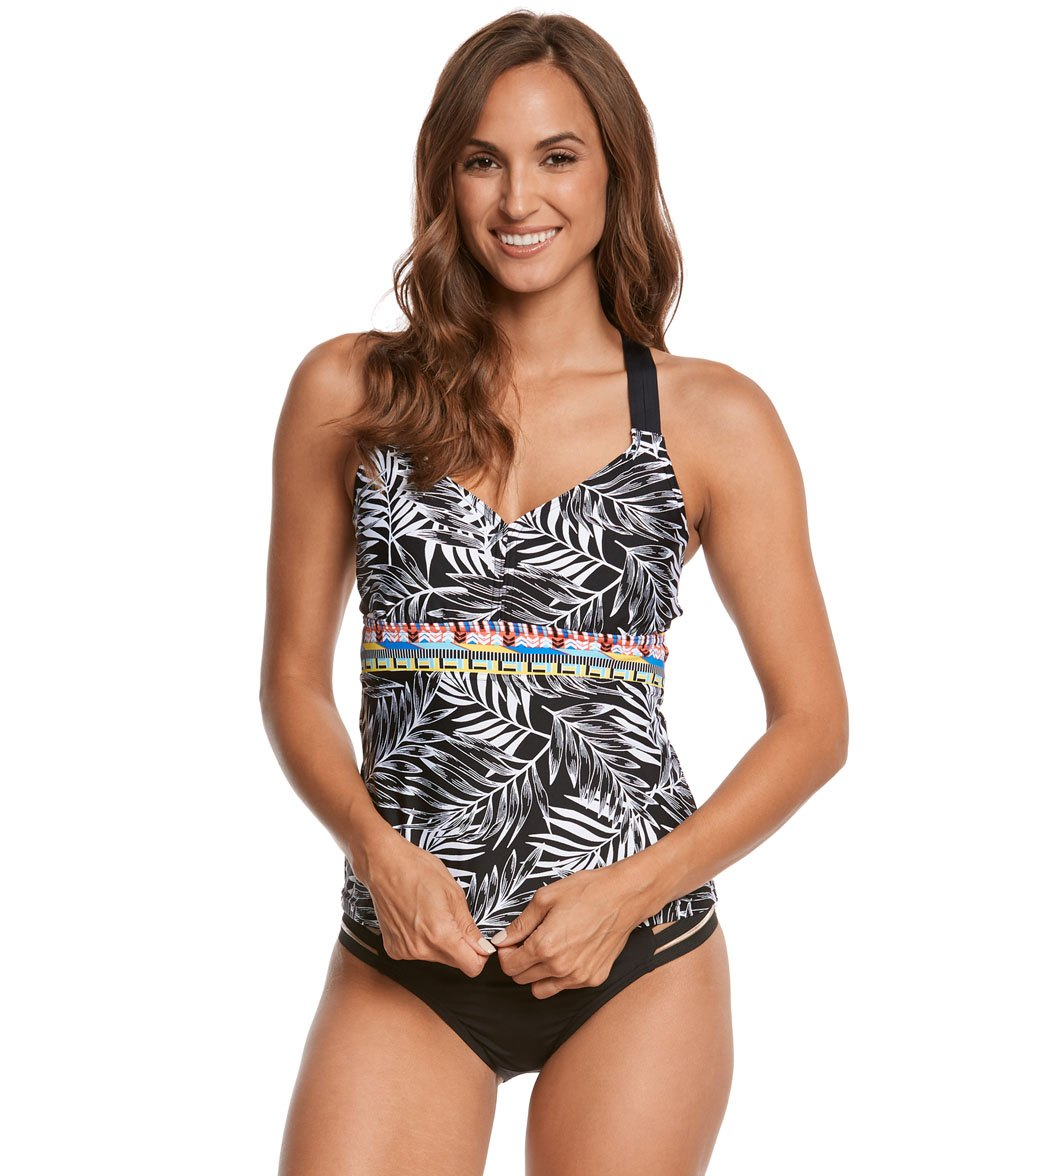 1fb4c380aa745 Jag Tropical Palm Underwire Tankini Top (D DD-Cup) at SwimOutlet ...